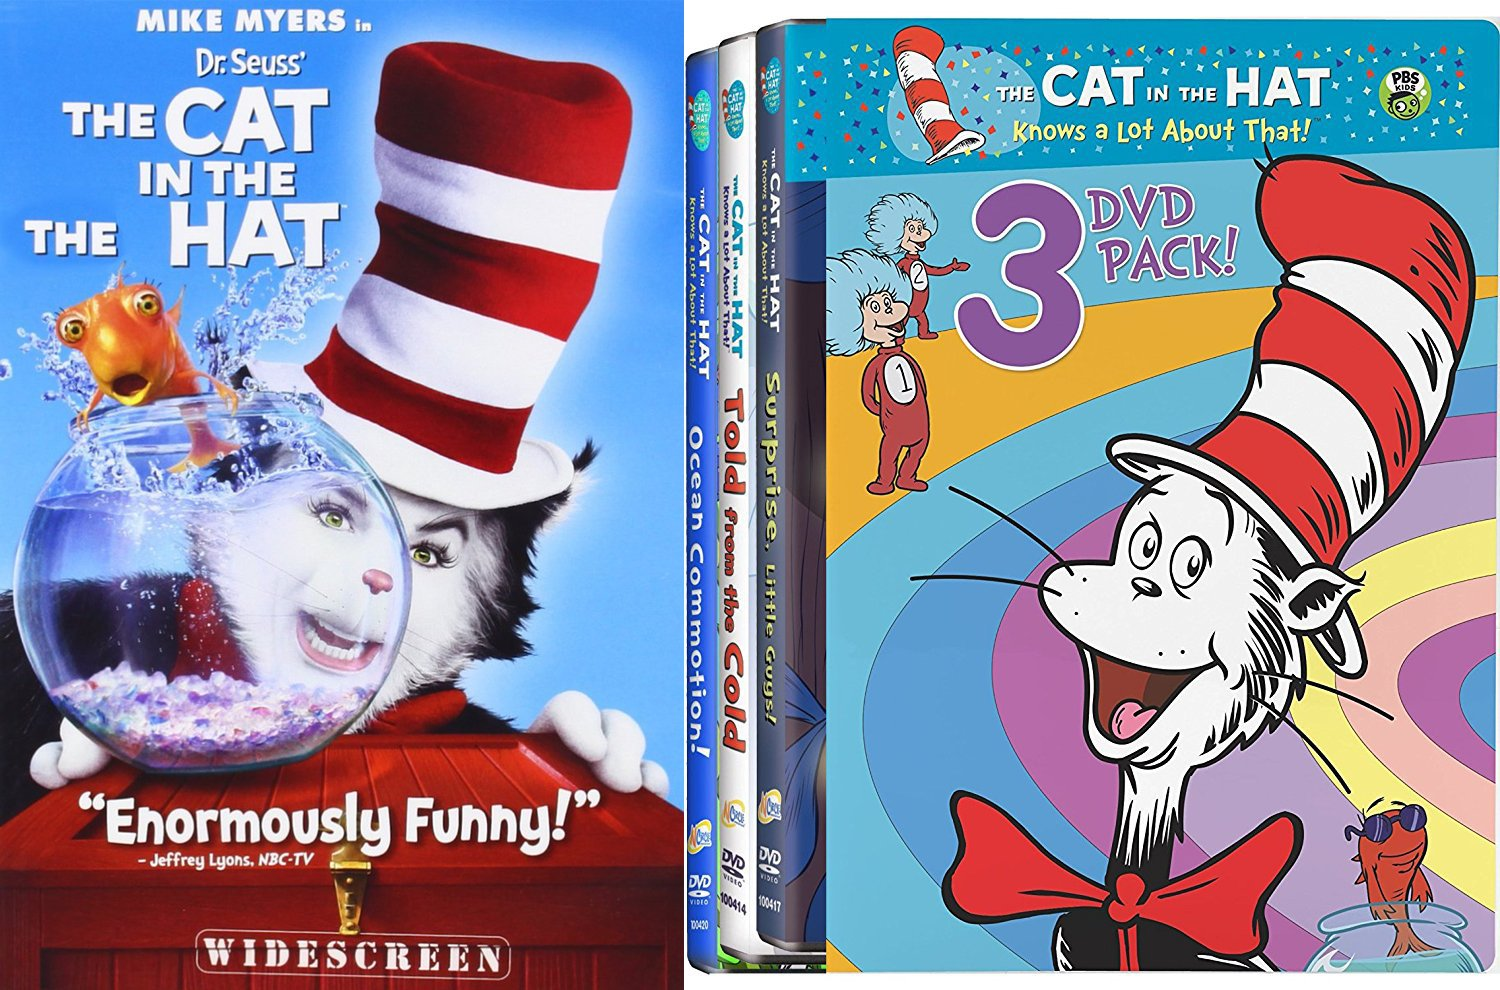 The cat in the hat live action